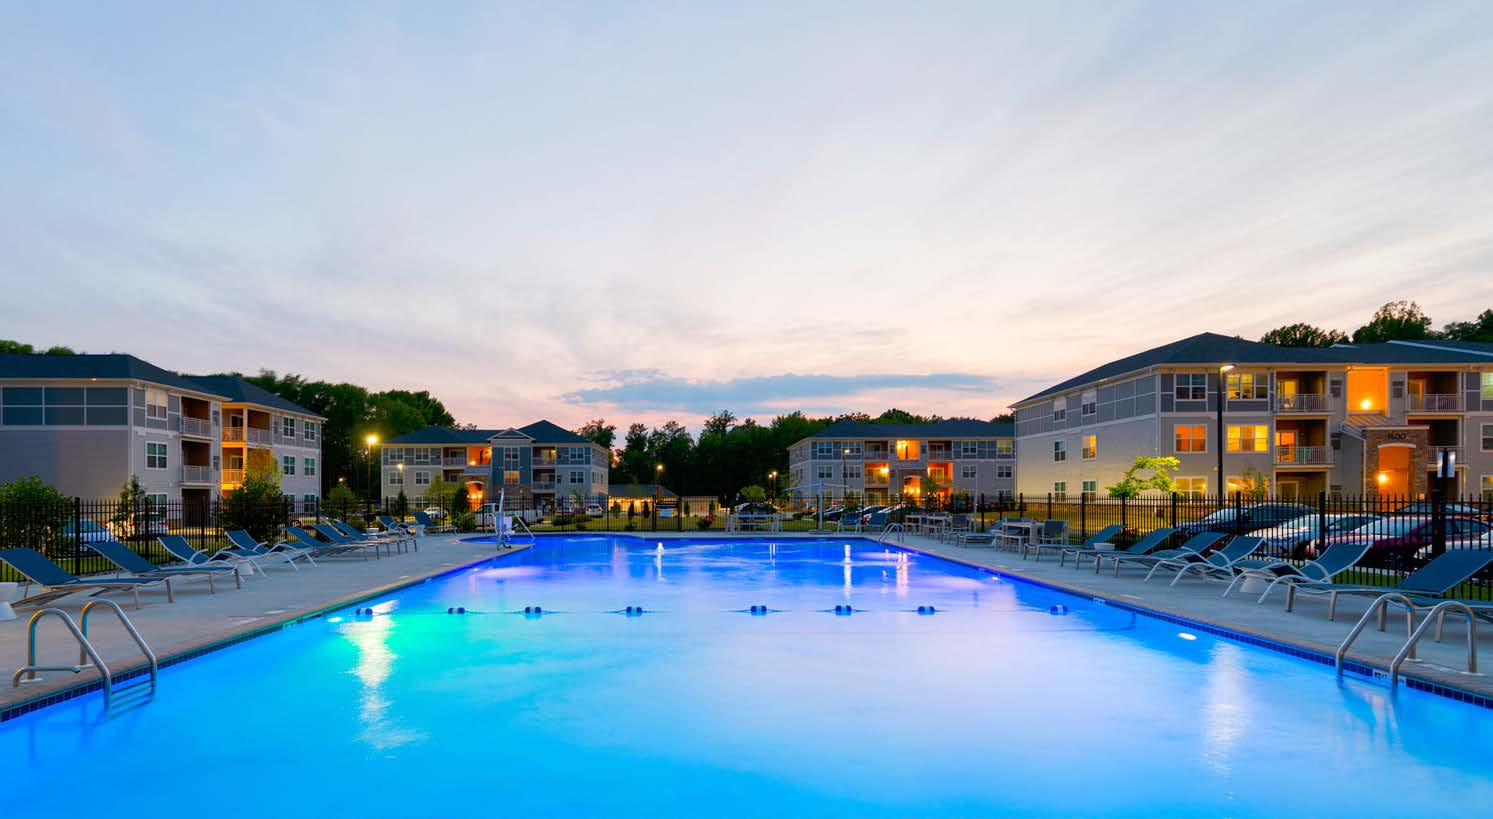 resort style pool, chaise lounge chairs at dusk with apartment building in the background - newark de luxury apartments